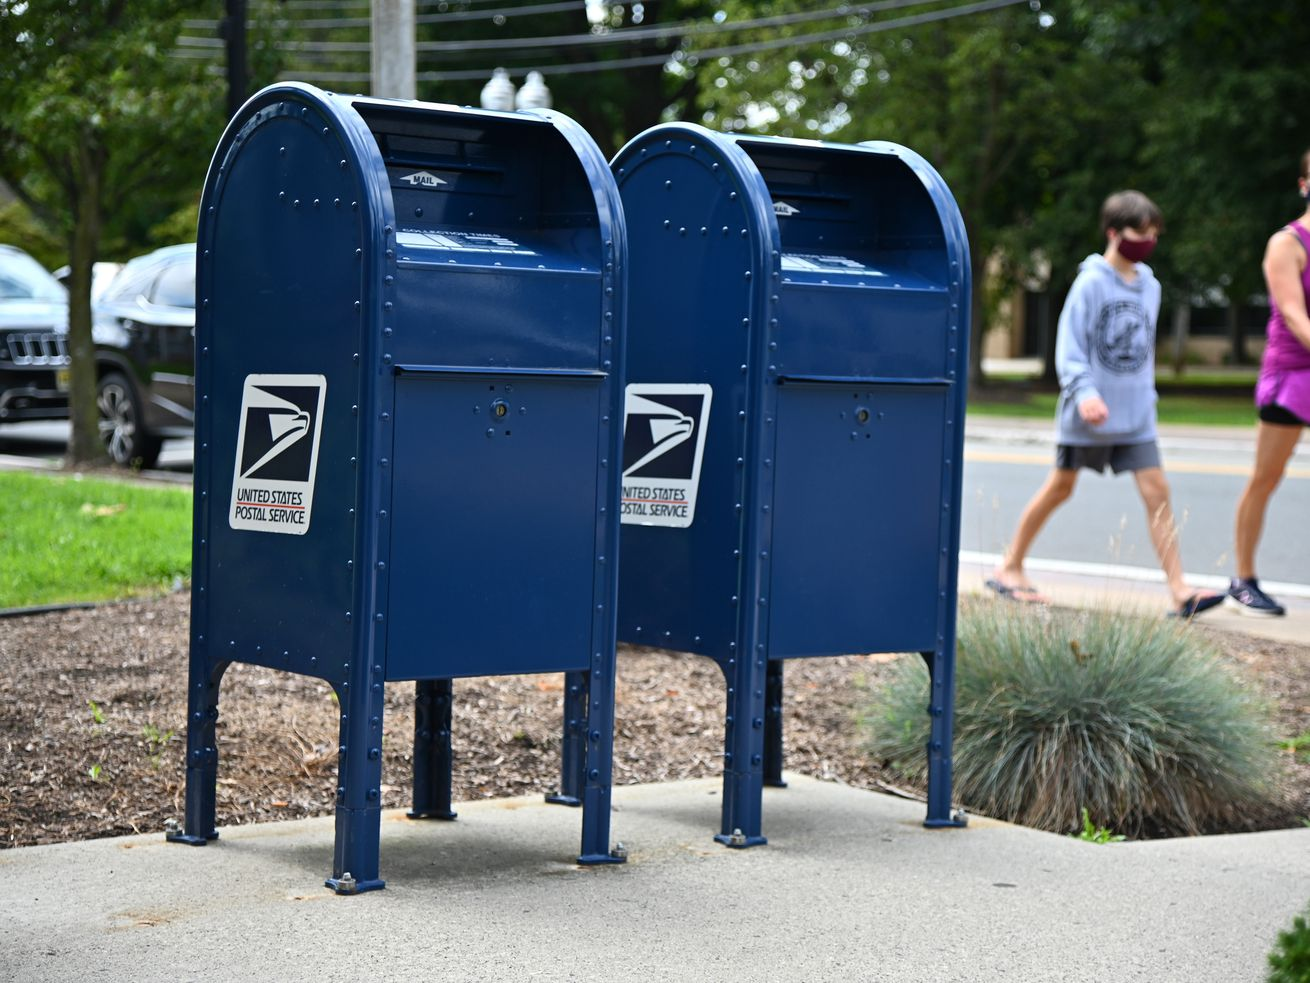 The choices are in the mail? Nearly a quarter of a million ballots to start hitting Chicago mailboxes